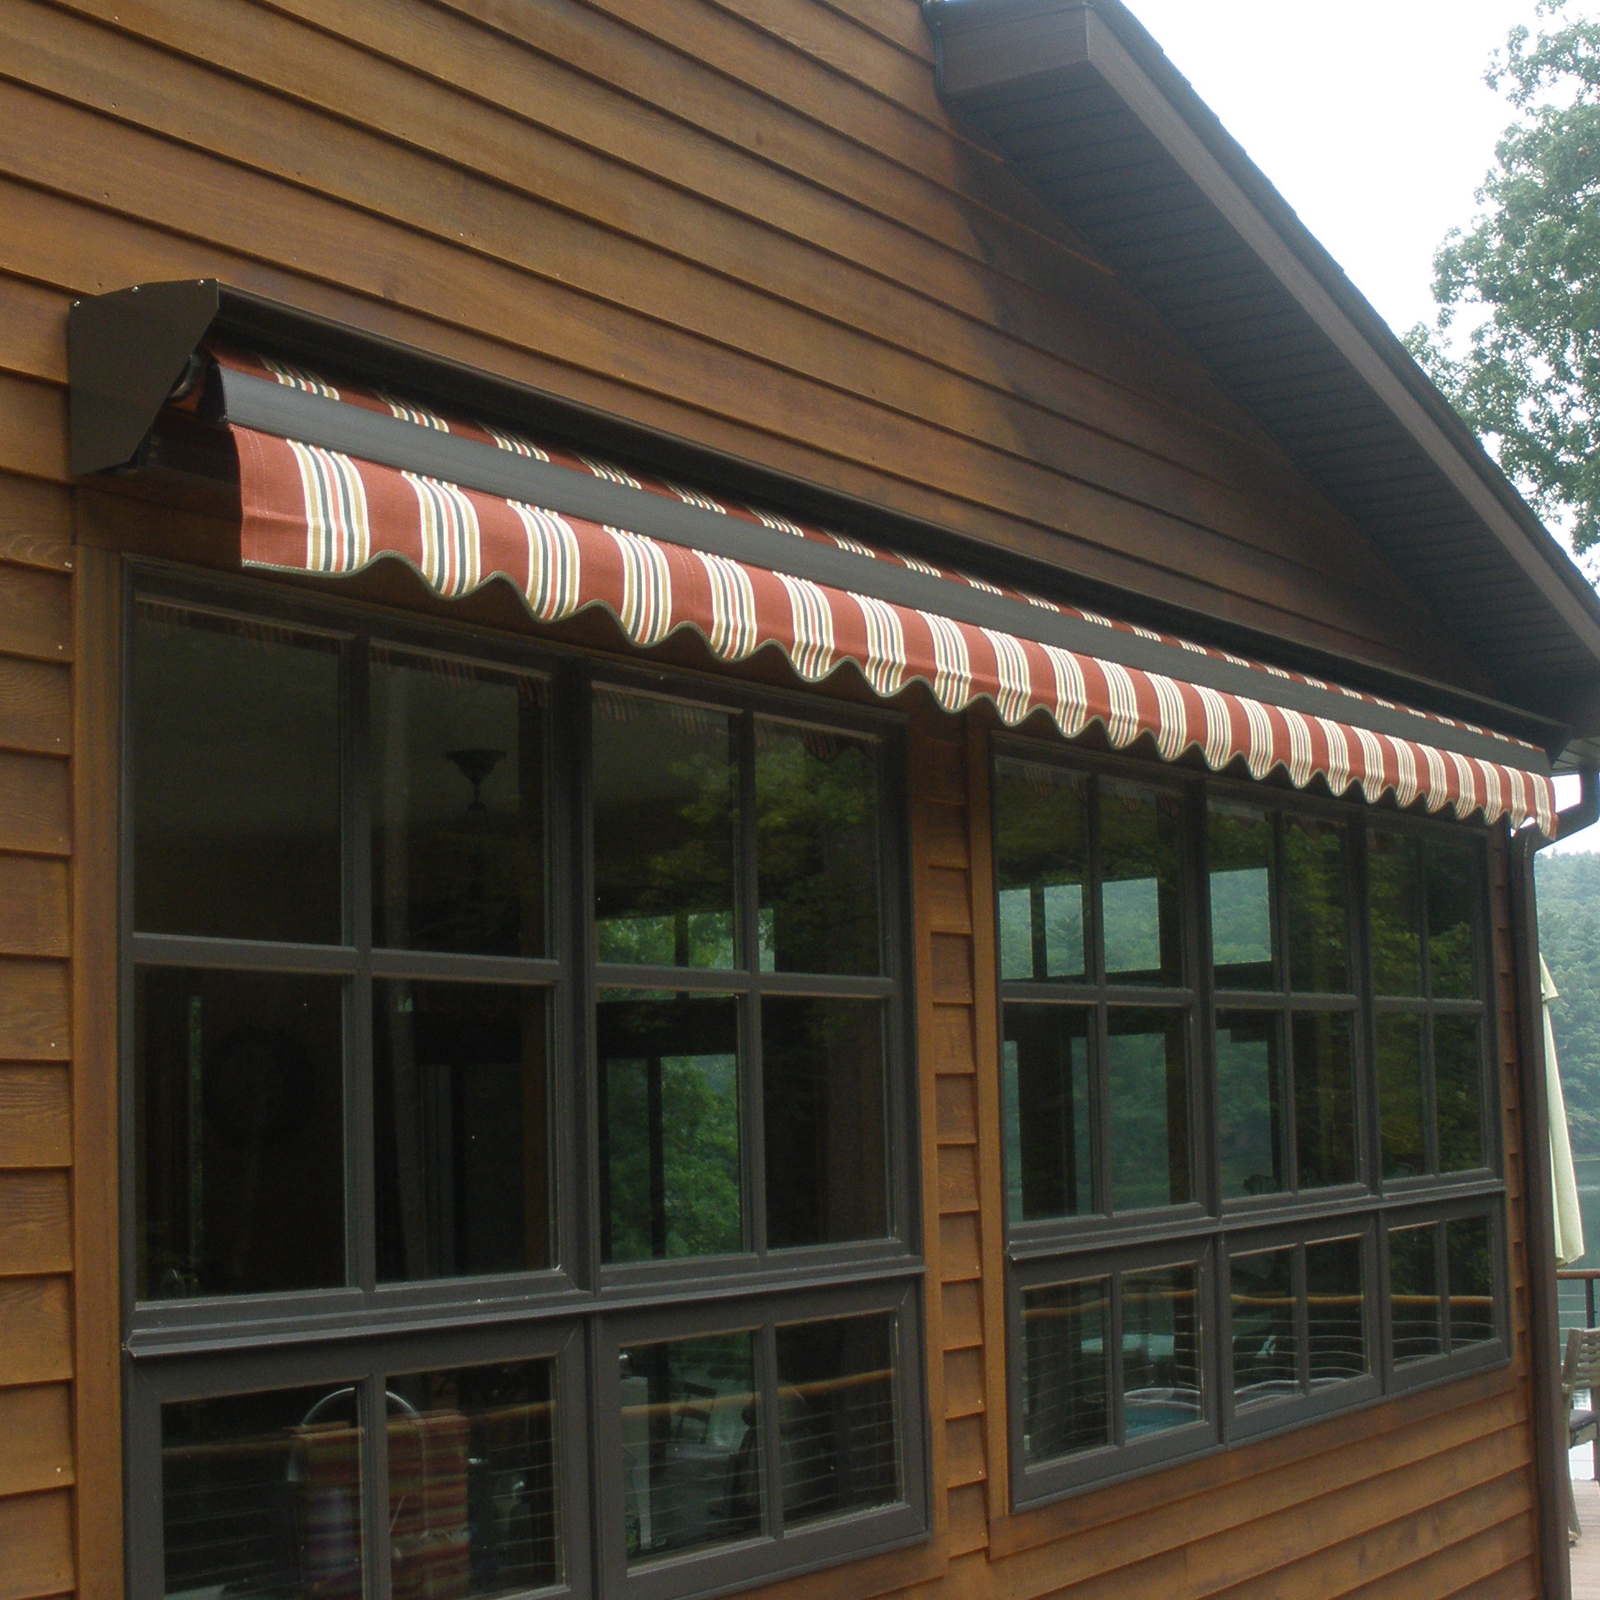 awnings inspirational ideas of mark cottage metal biz themiracle kits awning design beauty home window timber period canopy awesome door